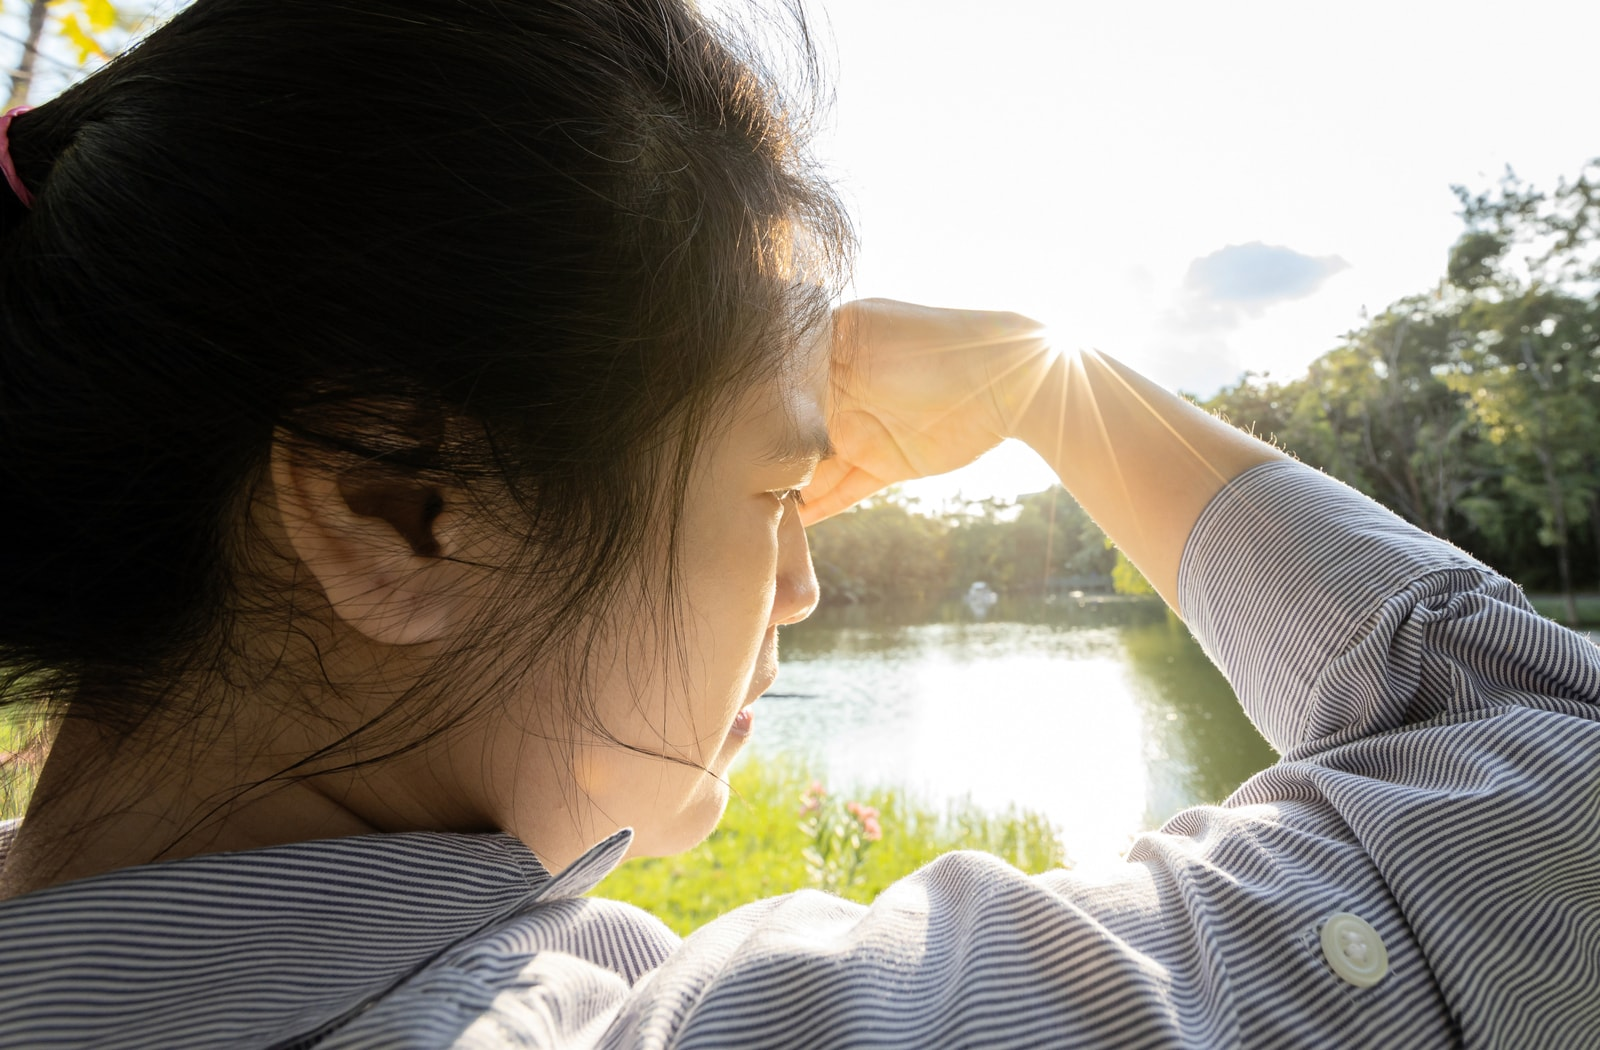 Woman irritated by bright light after eye exam